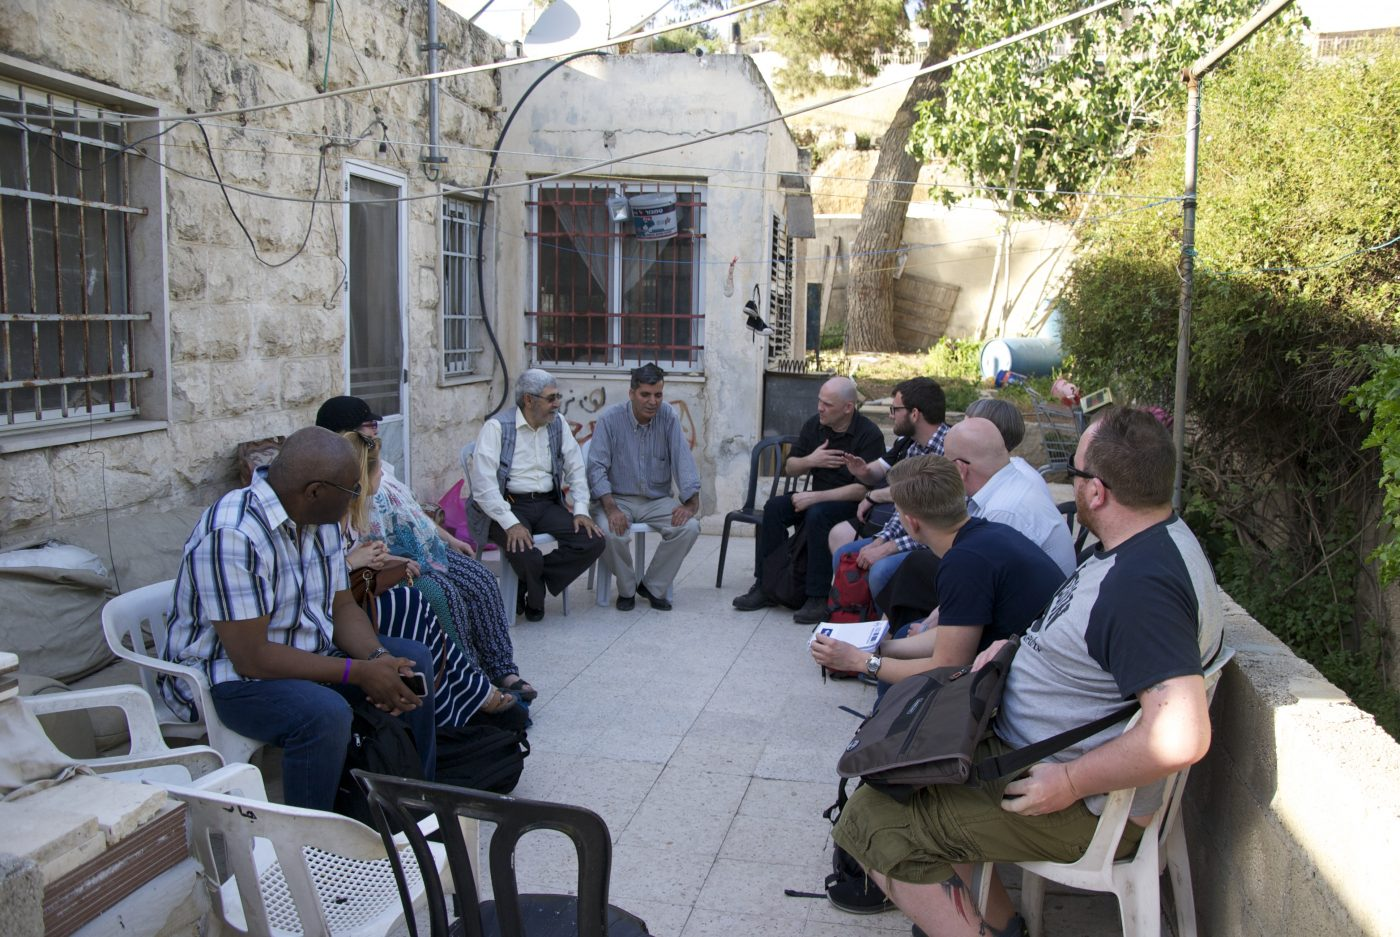 Nabil (on the left) tells the group about his experiences since the Israeli settlers took over half of his home in East Jerusalem